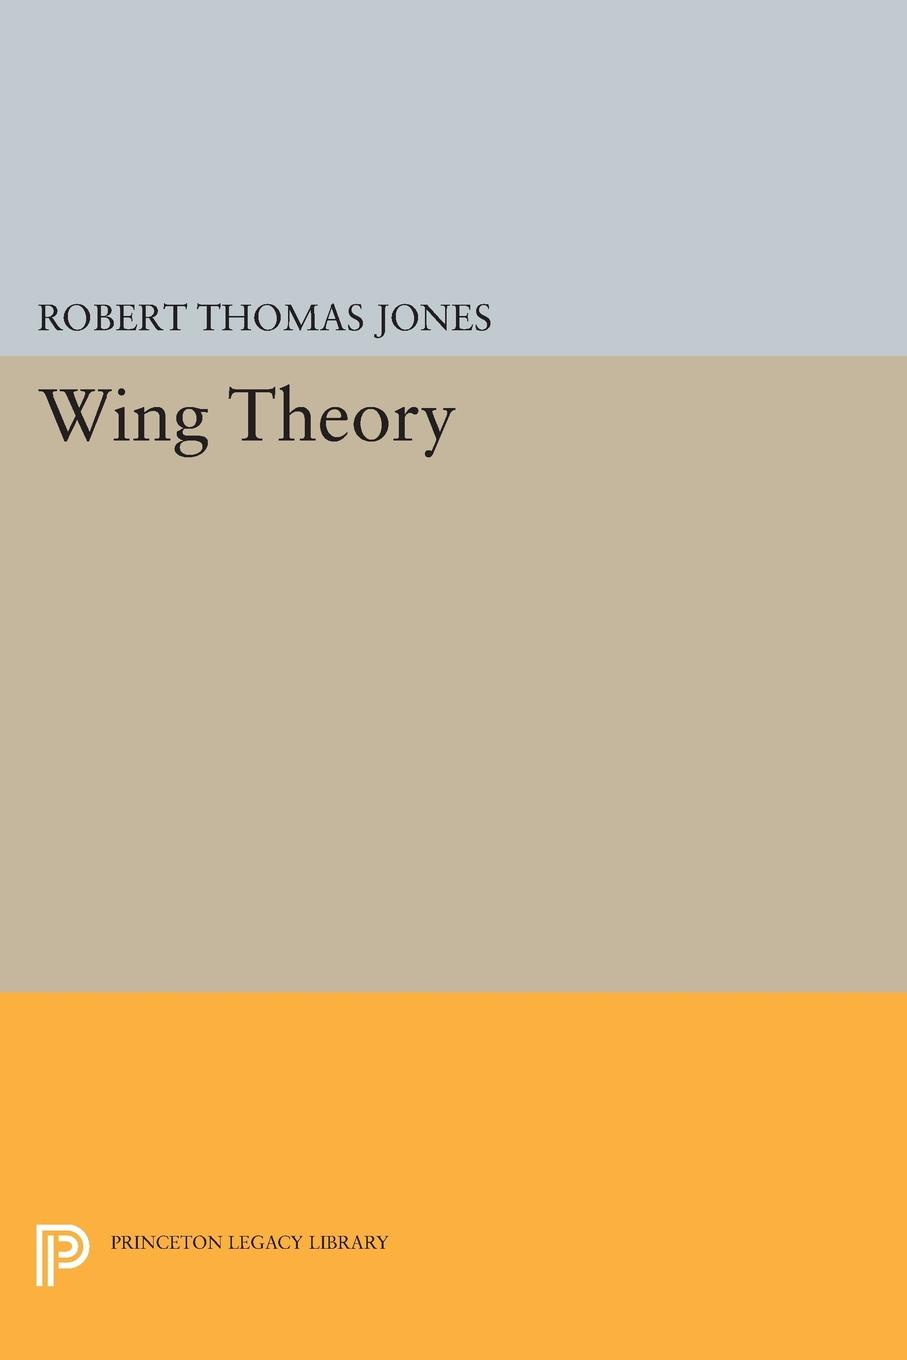 Wing Theory